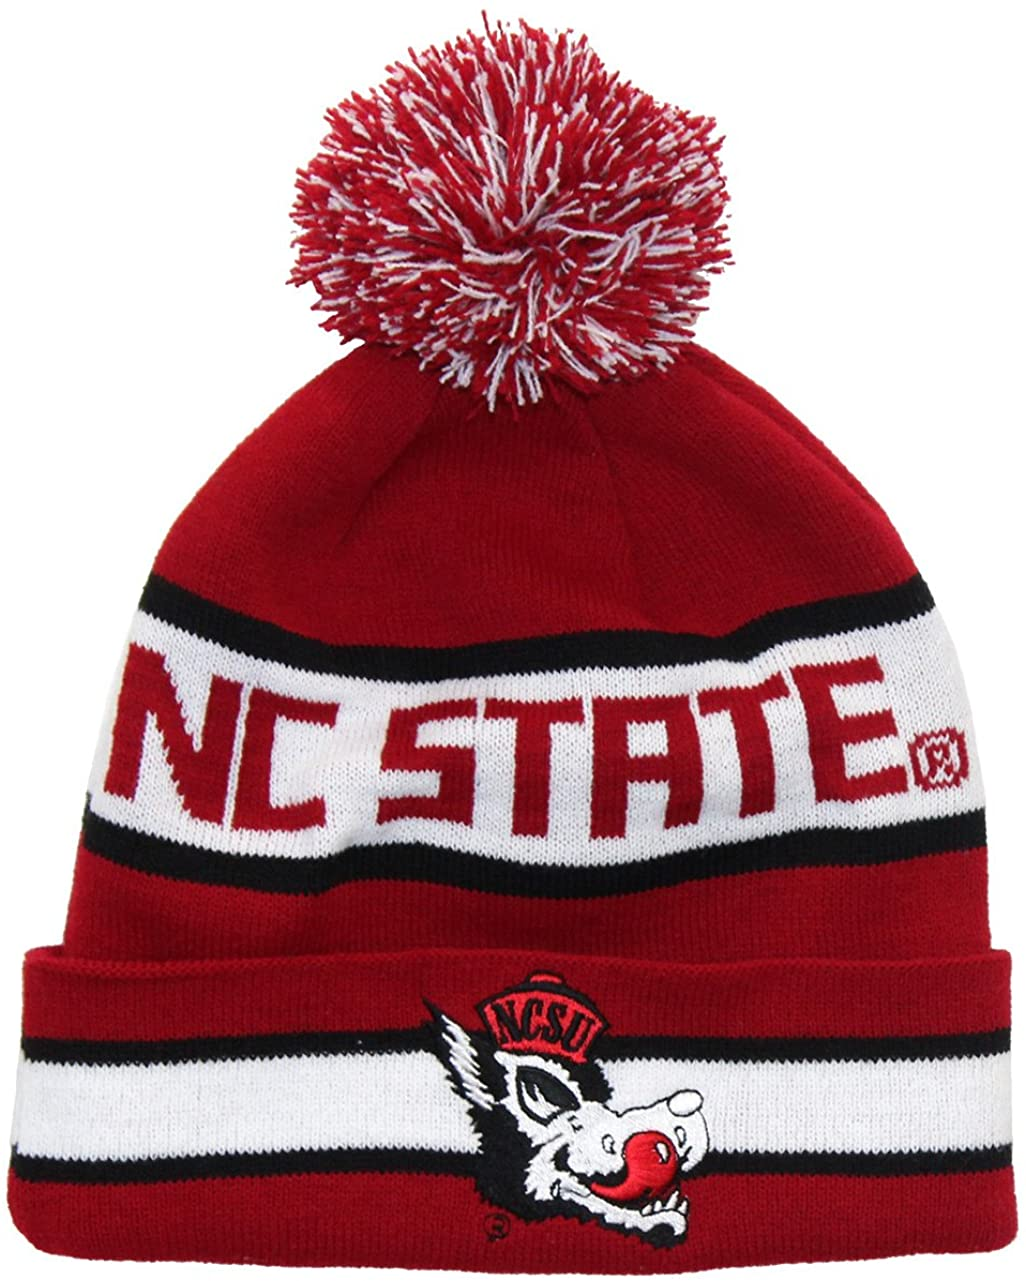 Tradition Scarves NC State Wolfpack Beanie - NCSU Hungry Wolf Retro Pom Beanie